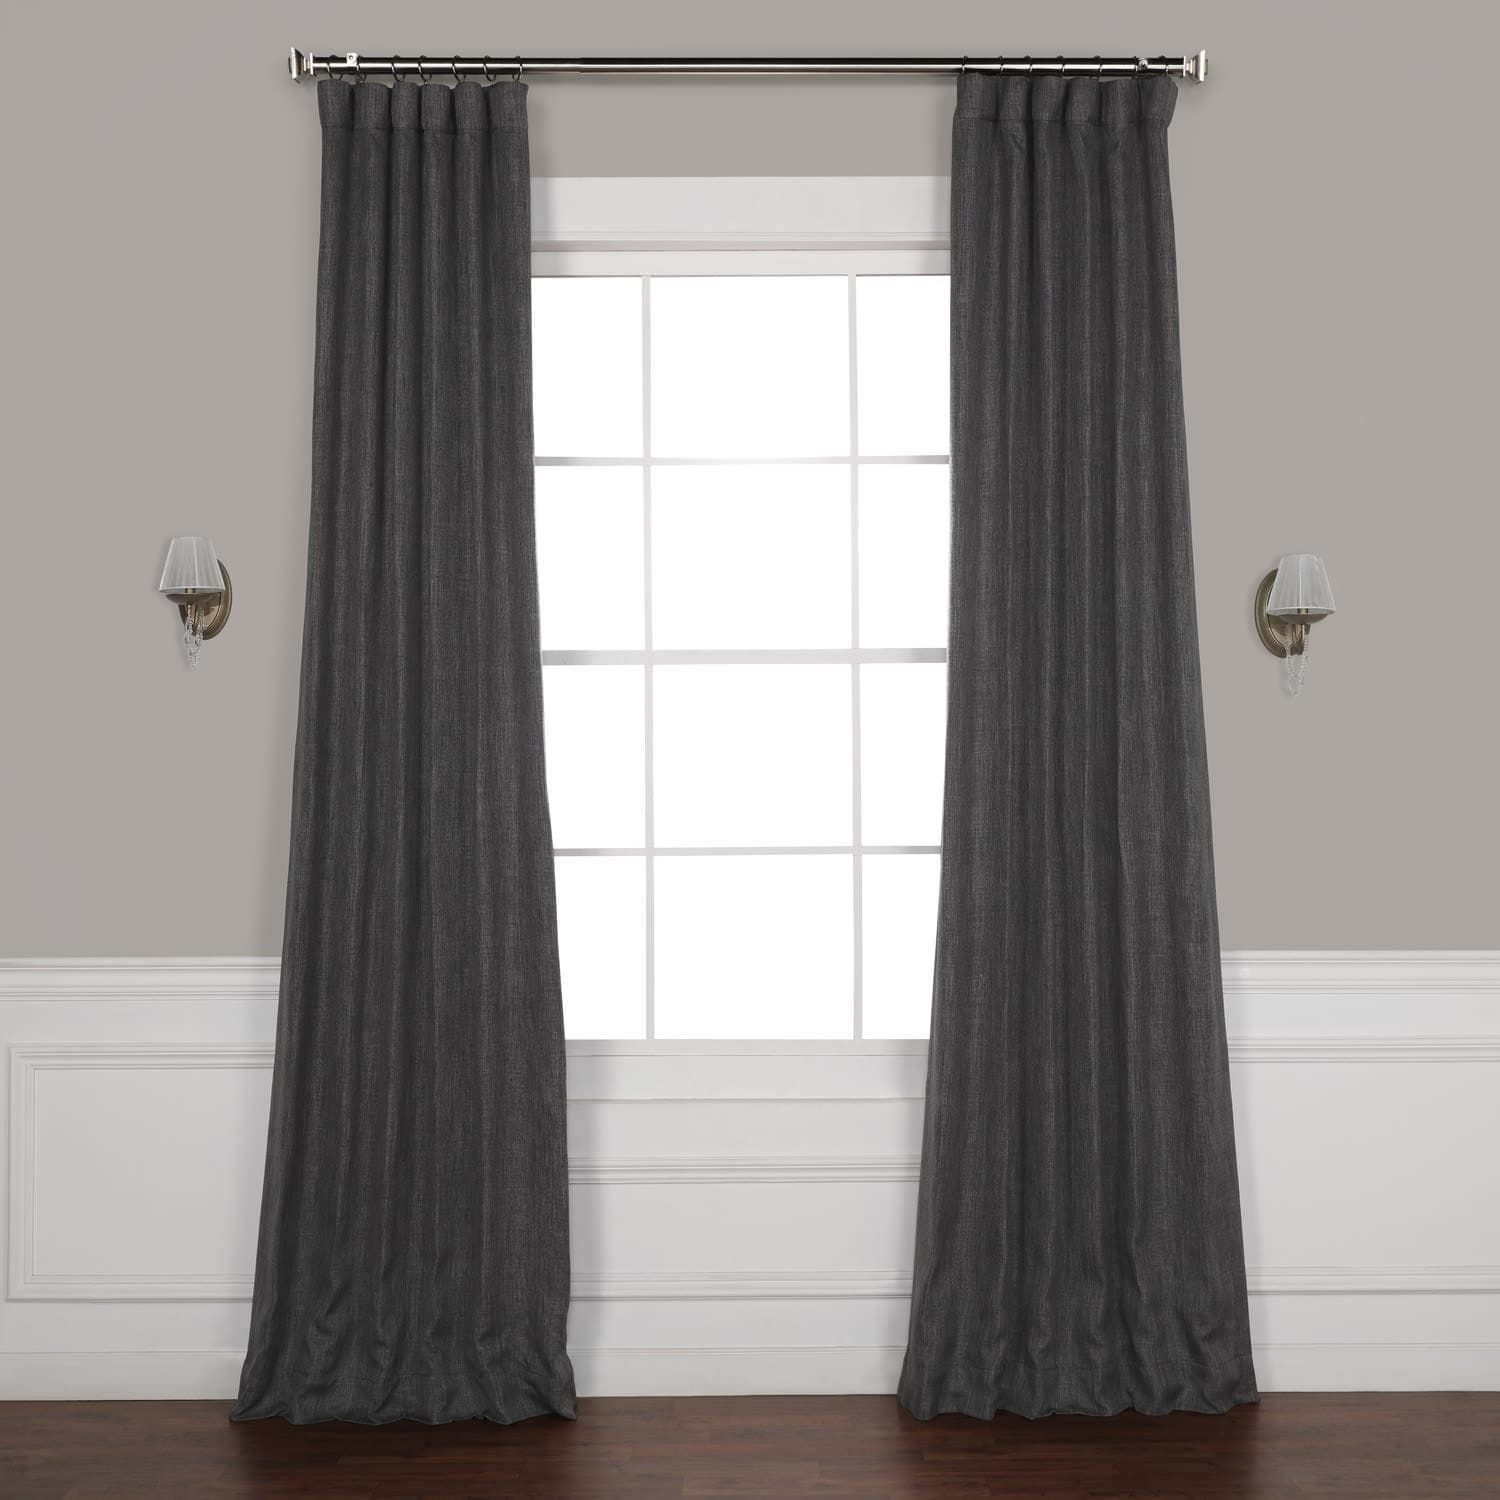 Exclusive Fabrics Faux Linen Blackout Curtain 50 X 84 Dark